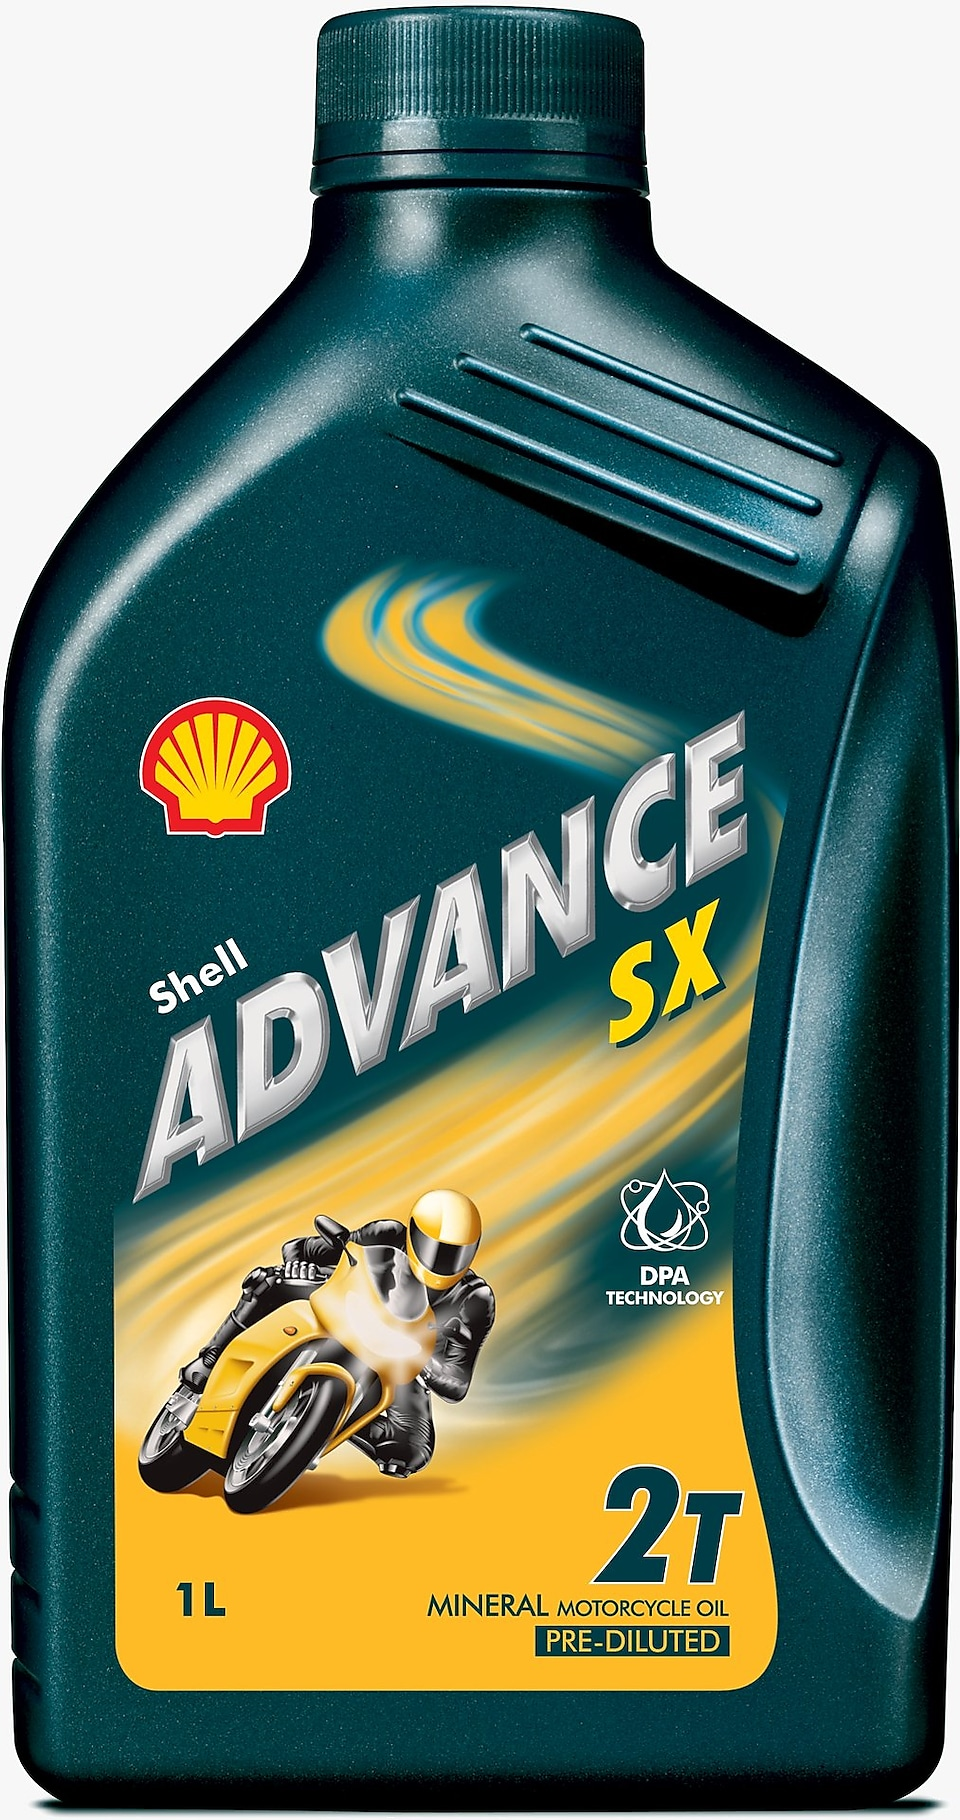 لقطة لعبوة زيت شل Advance SX 2